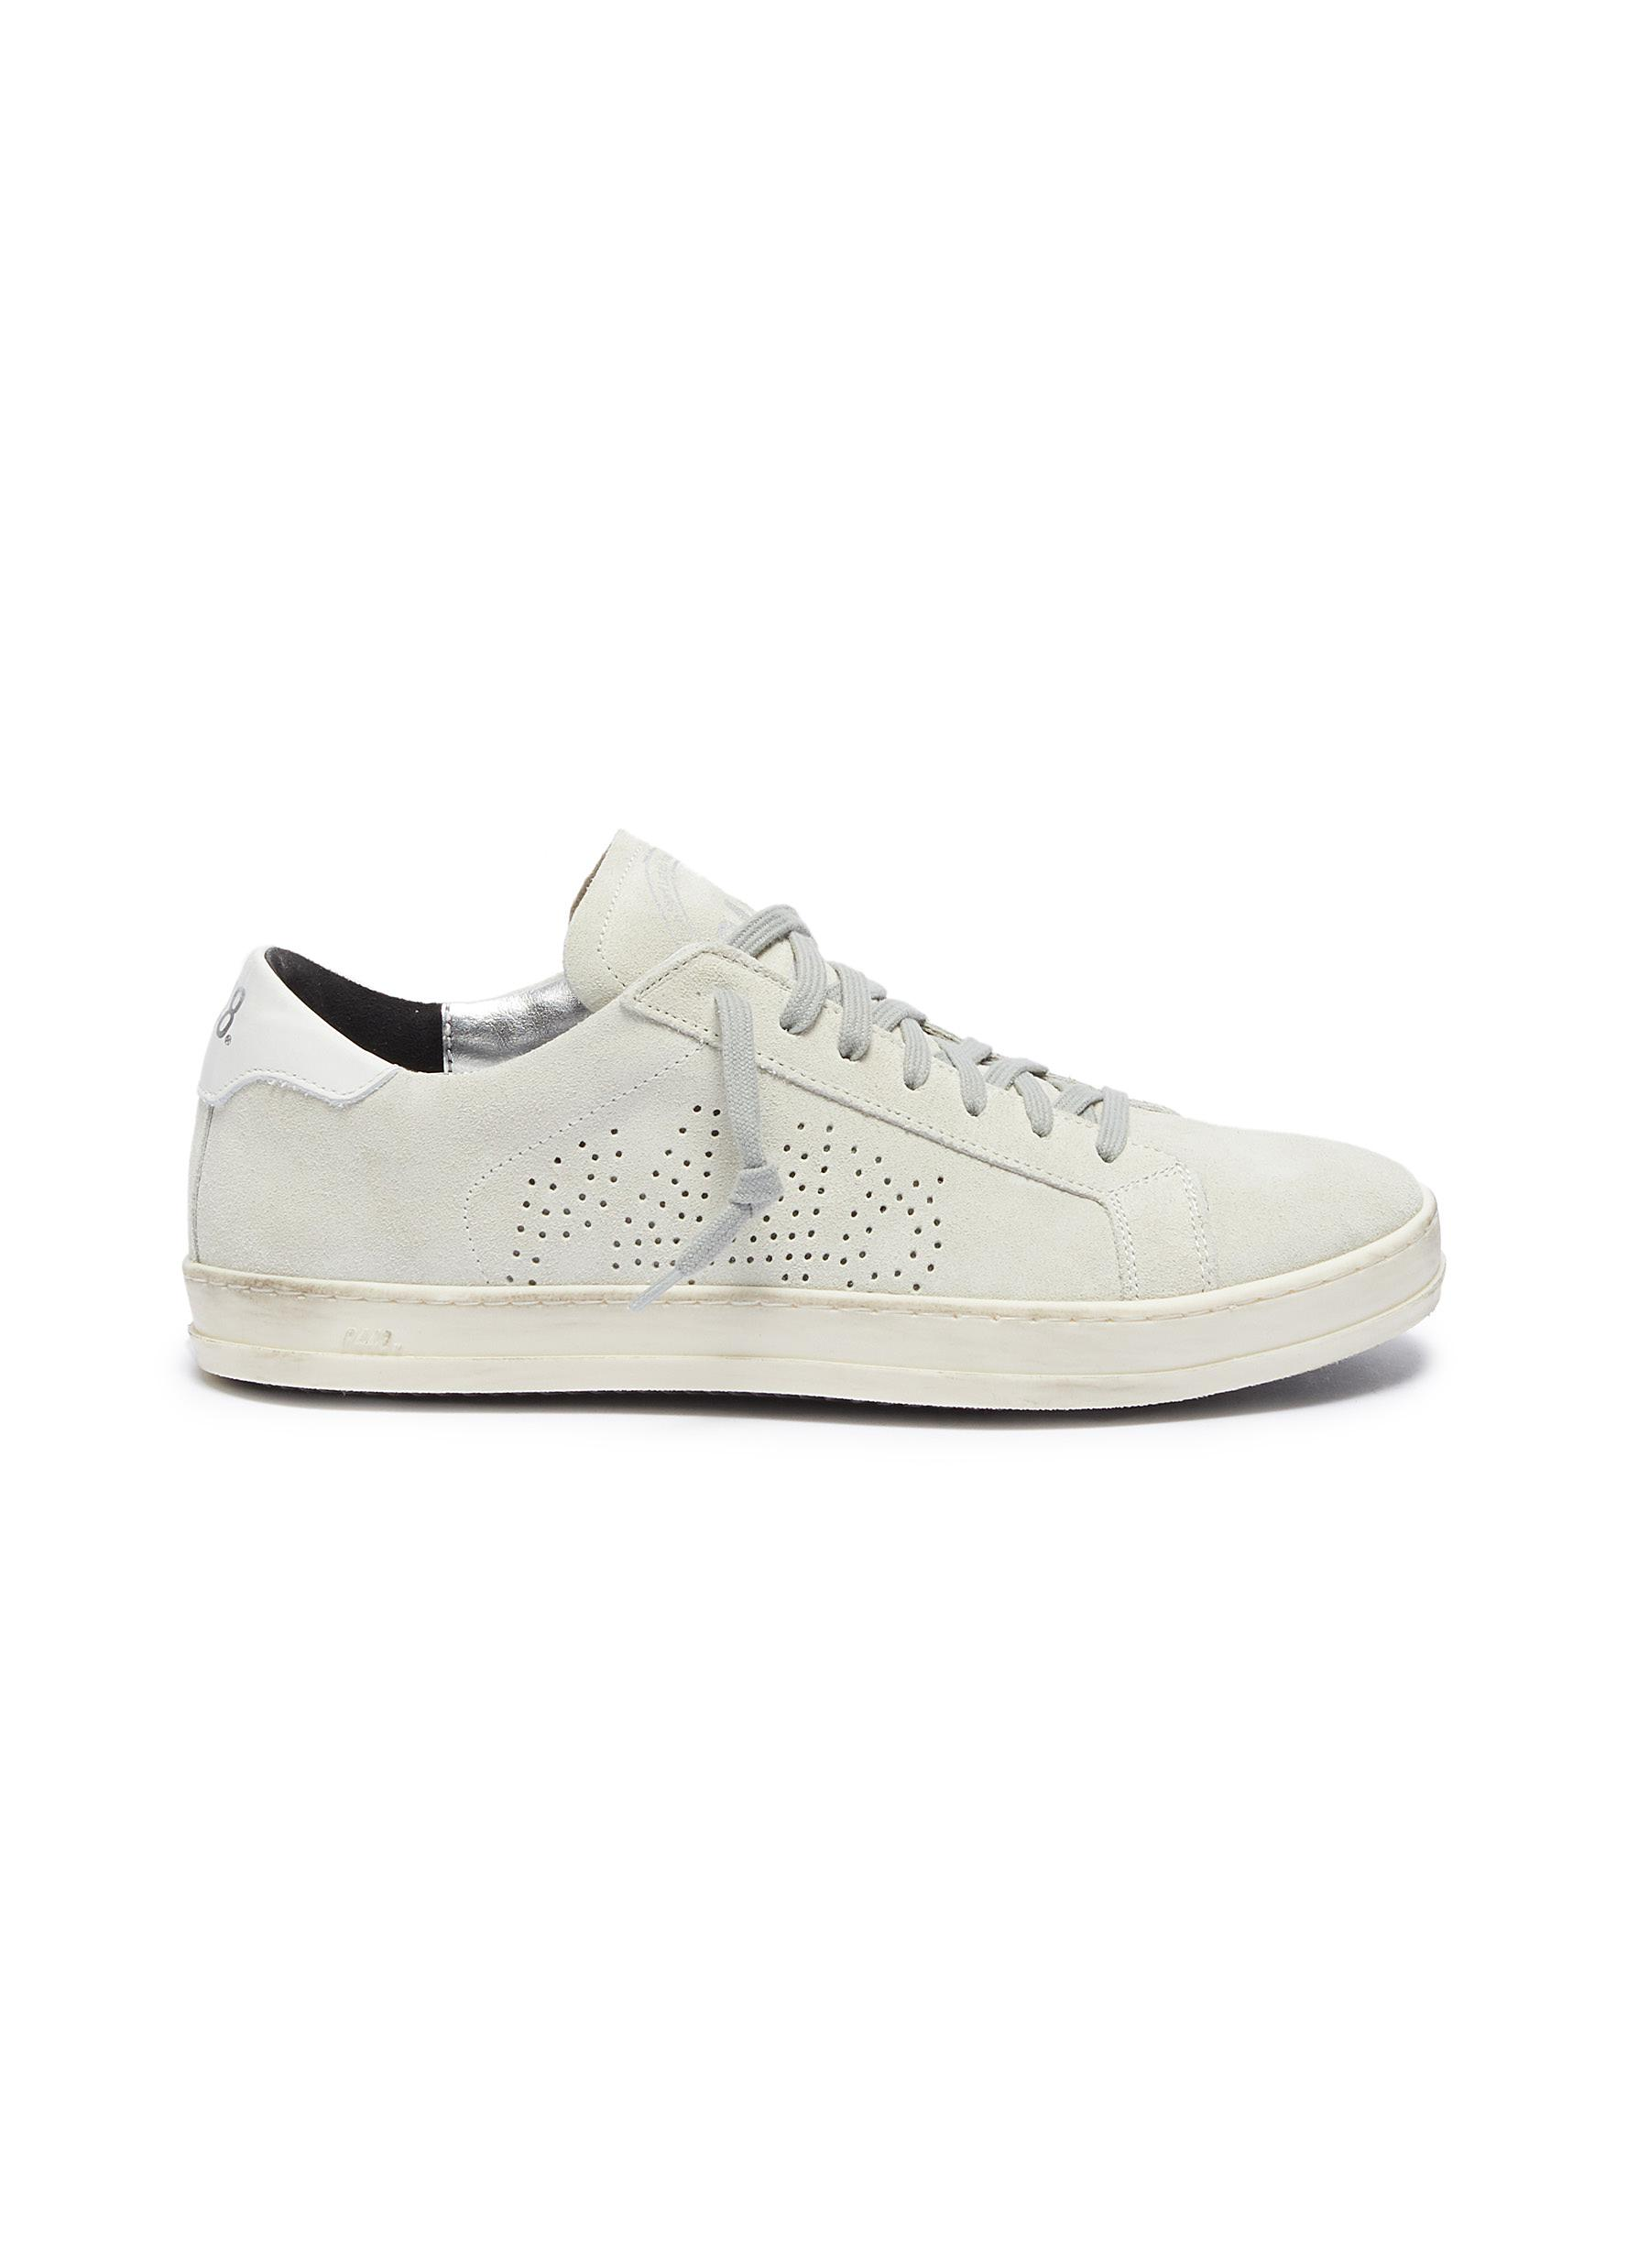 John suede sneakers by P448